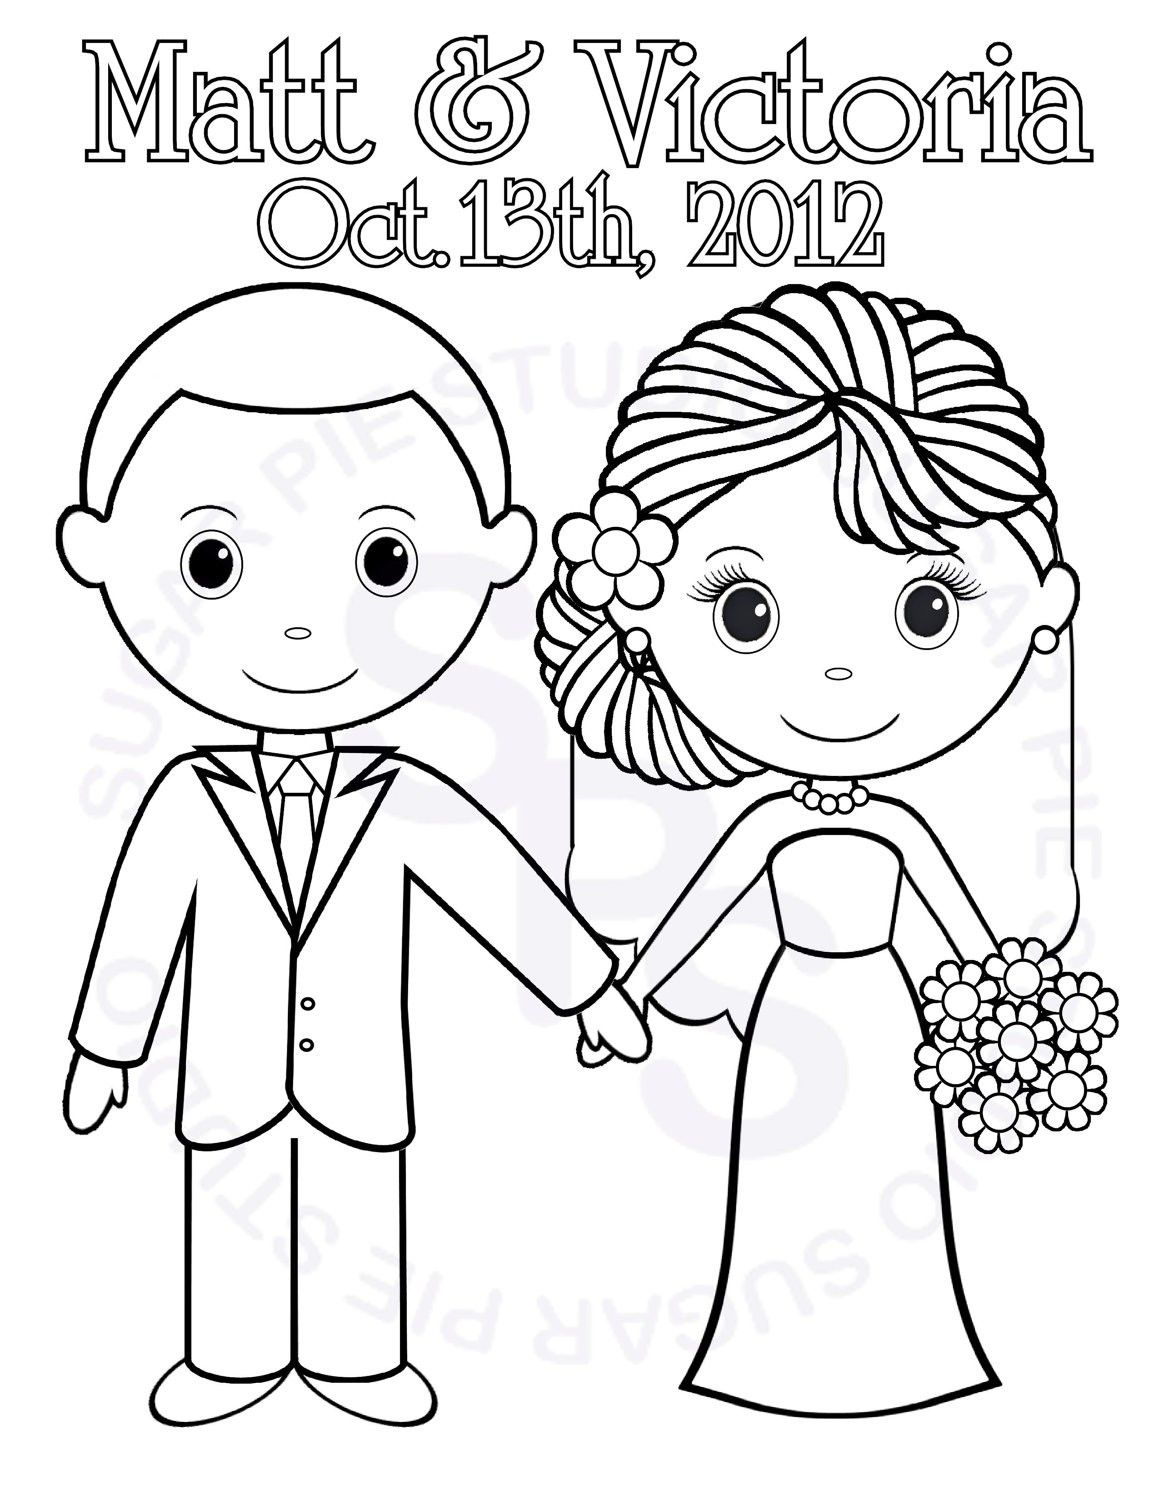 coloring pages fiji - photo#33